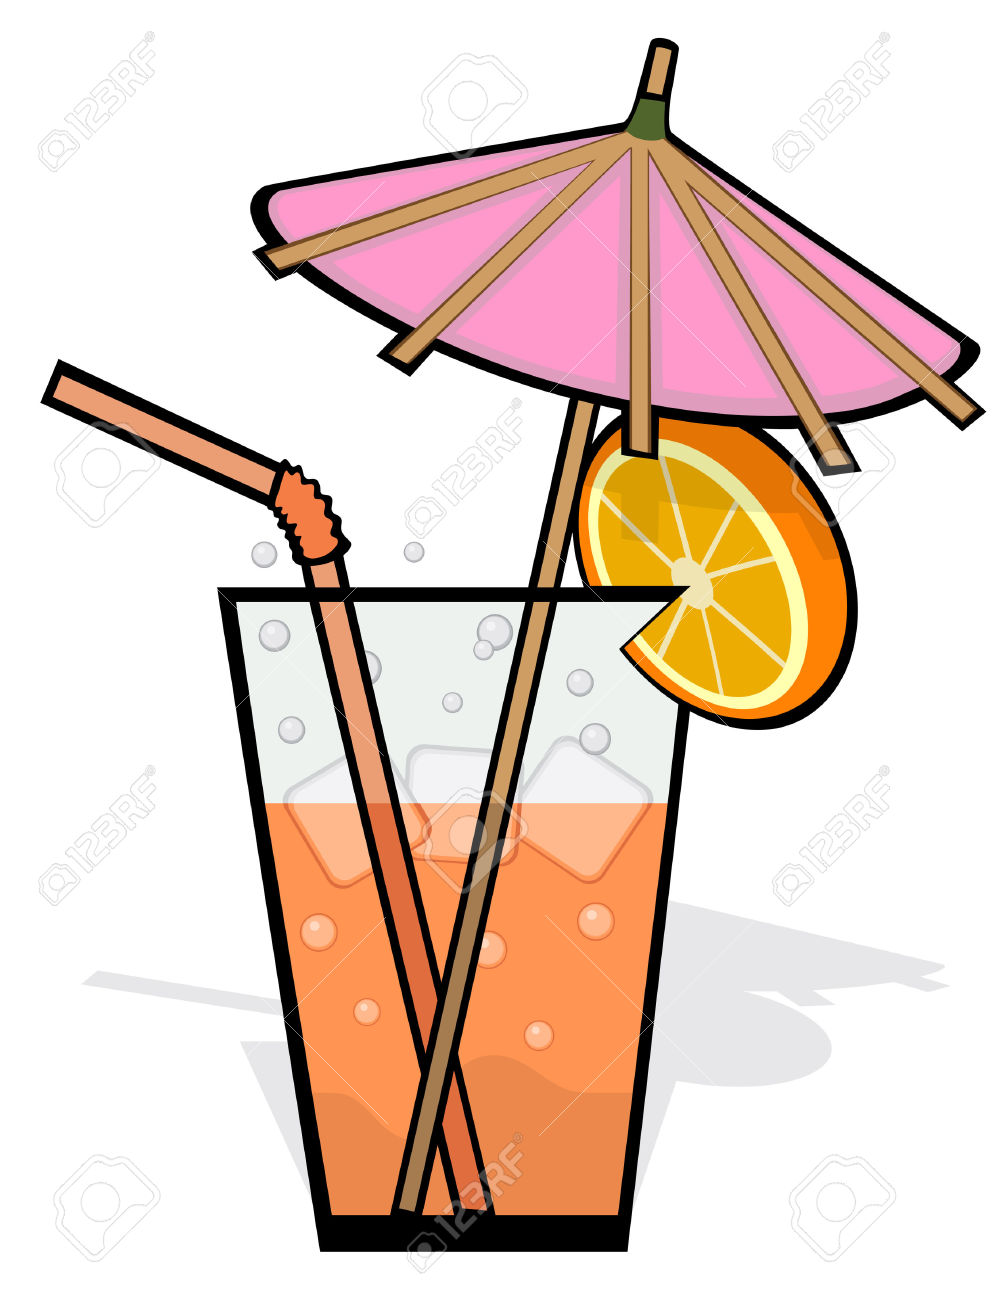 Drink Garnished With A Pink Umbrella, Straw And Orange Slice.